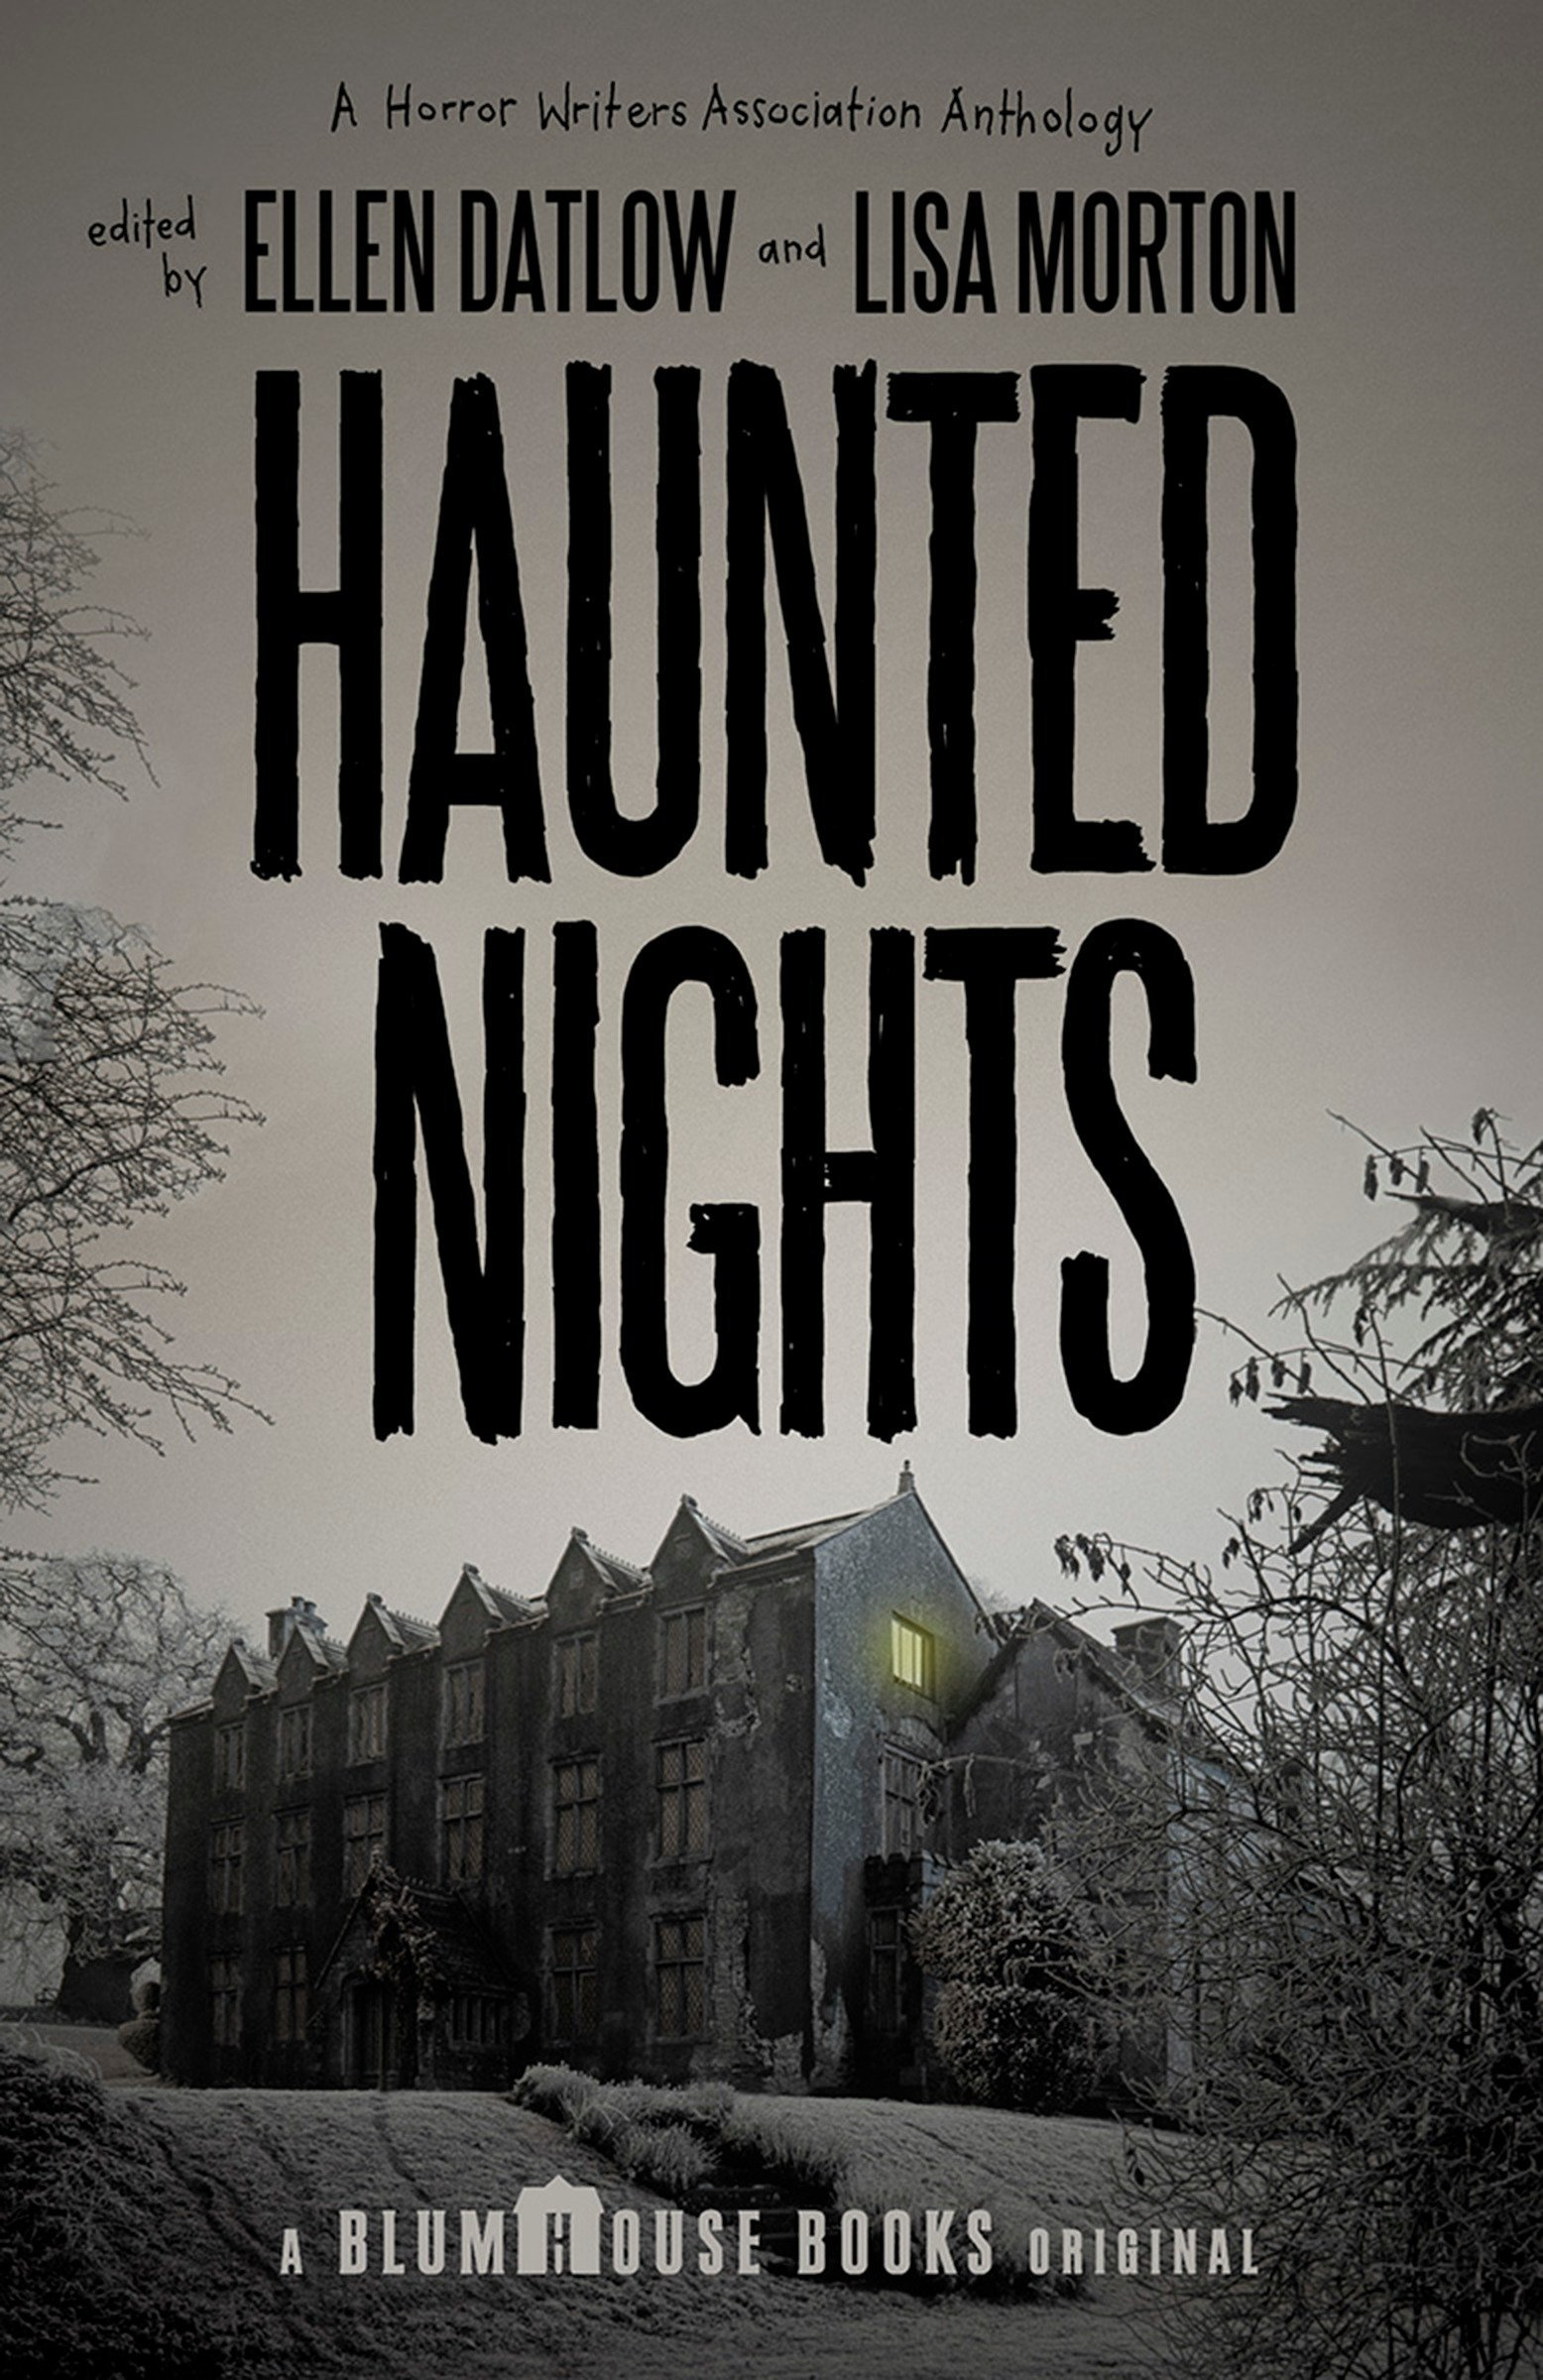 Image result for book cover haunted nights ellen datlow